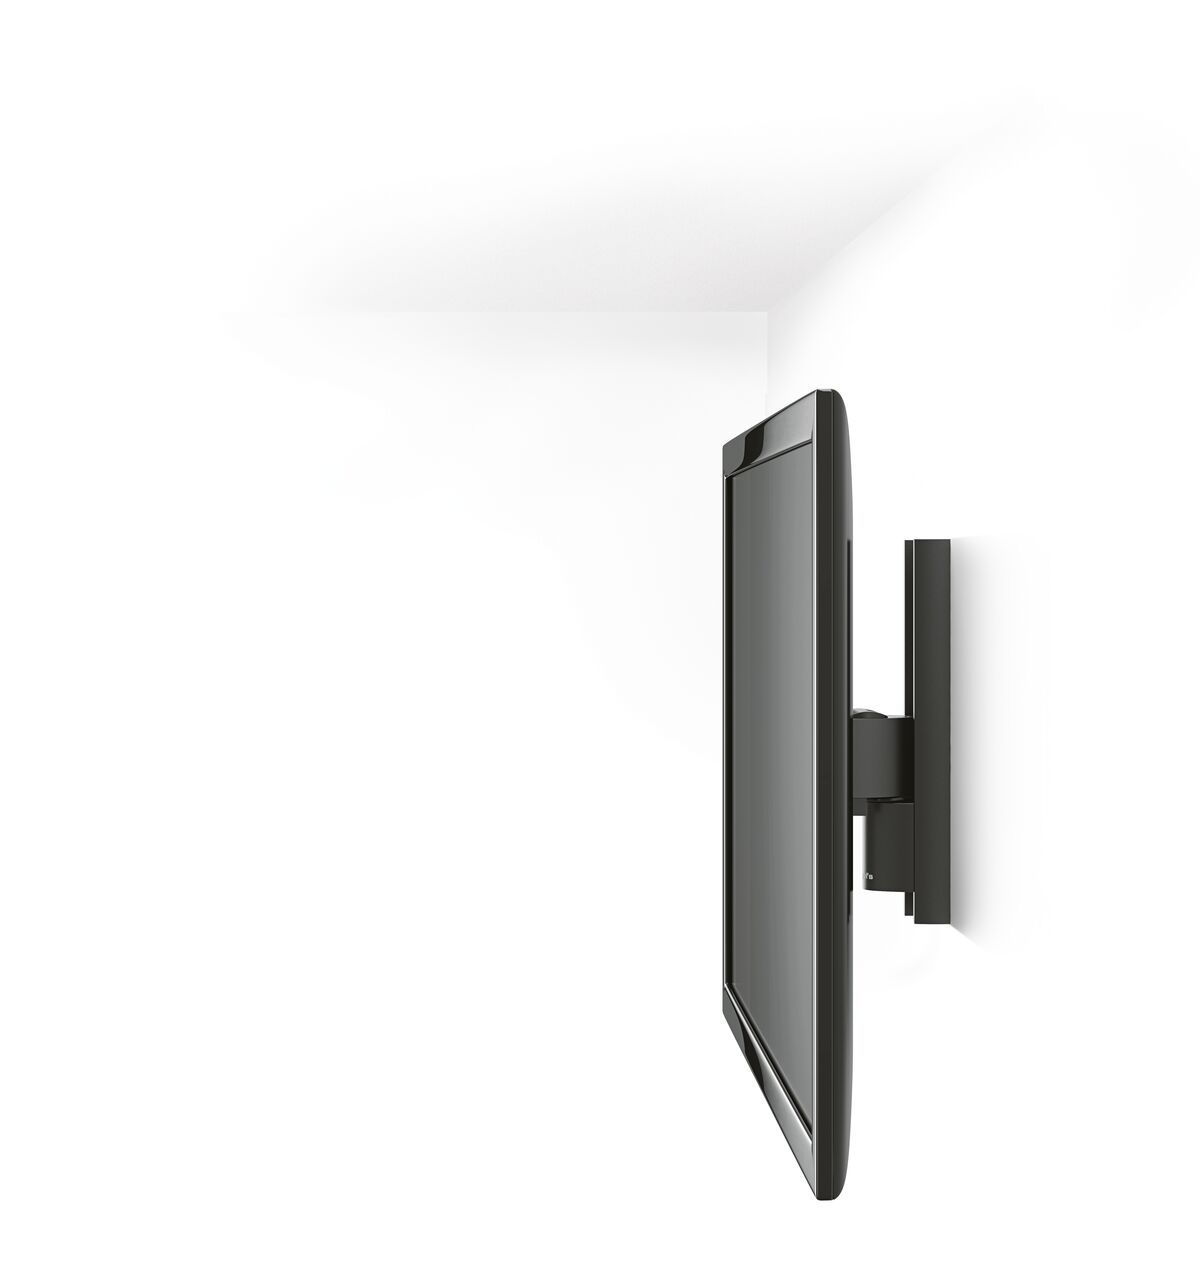 Vogel's WALL 1020 Full-Motion TV Wall Mount - Suitable for 17 up to 26 inch TVs - Limited motion (up to 60°) - Tilt -10°/+10° - Detail